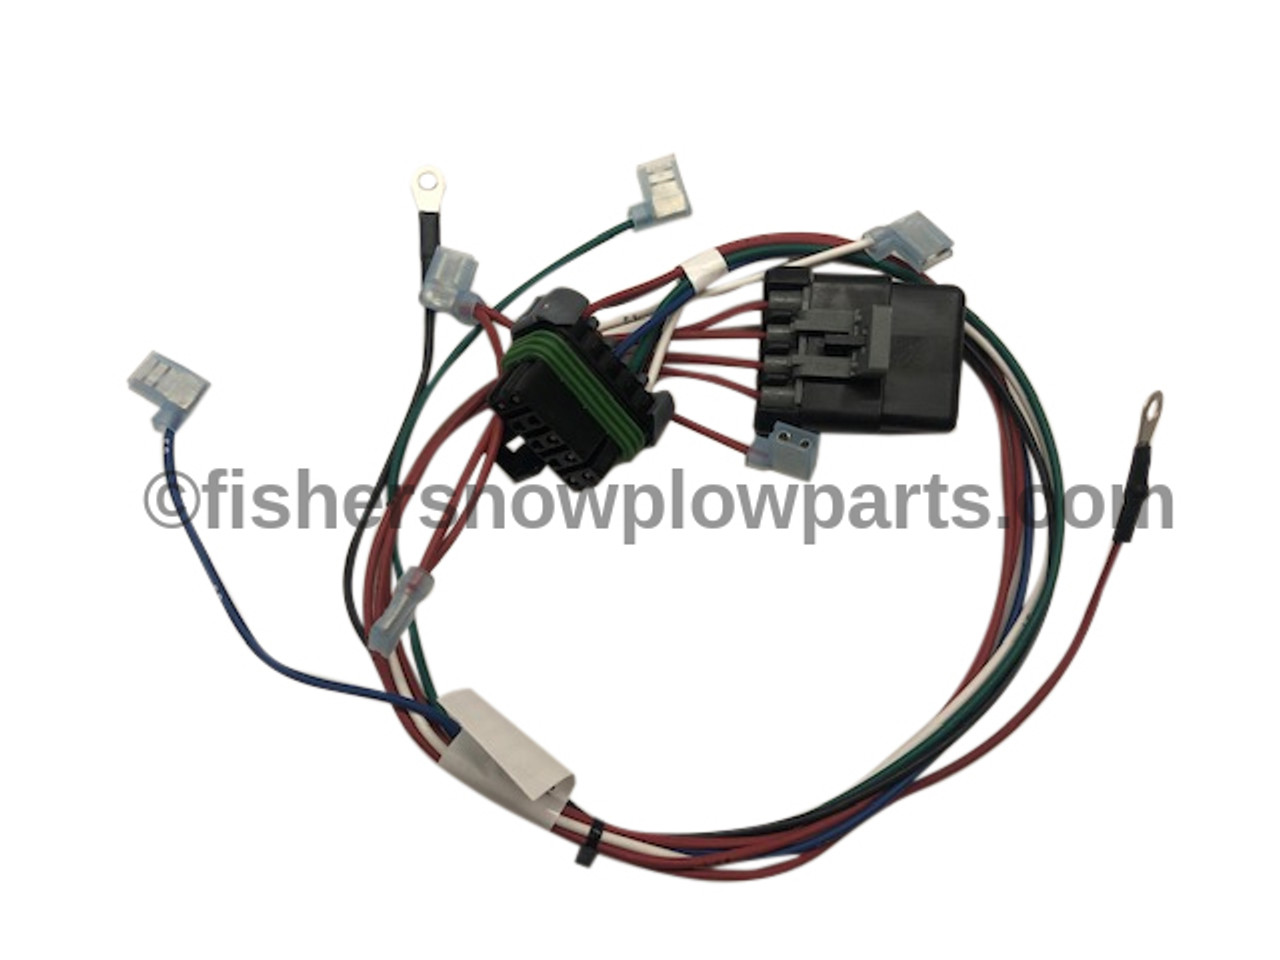 28581 1 Fisher Western Harness Plow Control 3 Sol Fleetflex Genuine Fisher Snow Plow Replacement Parts